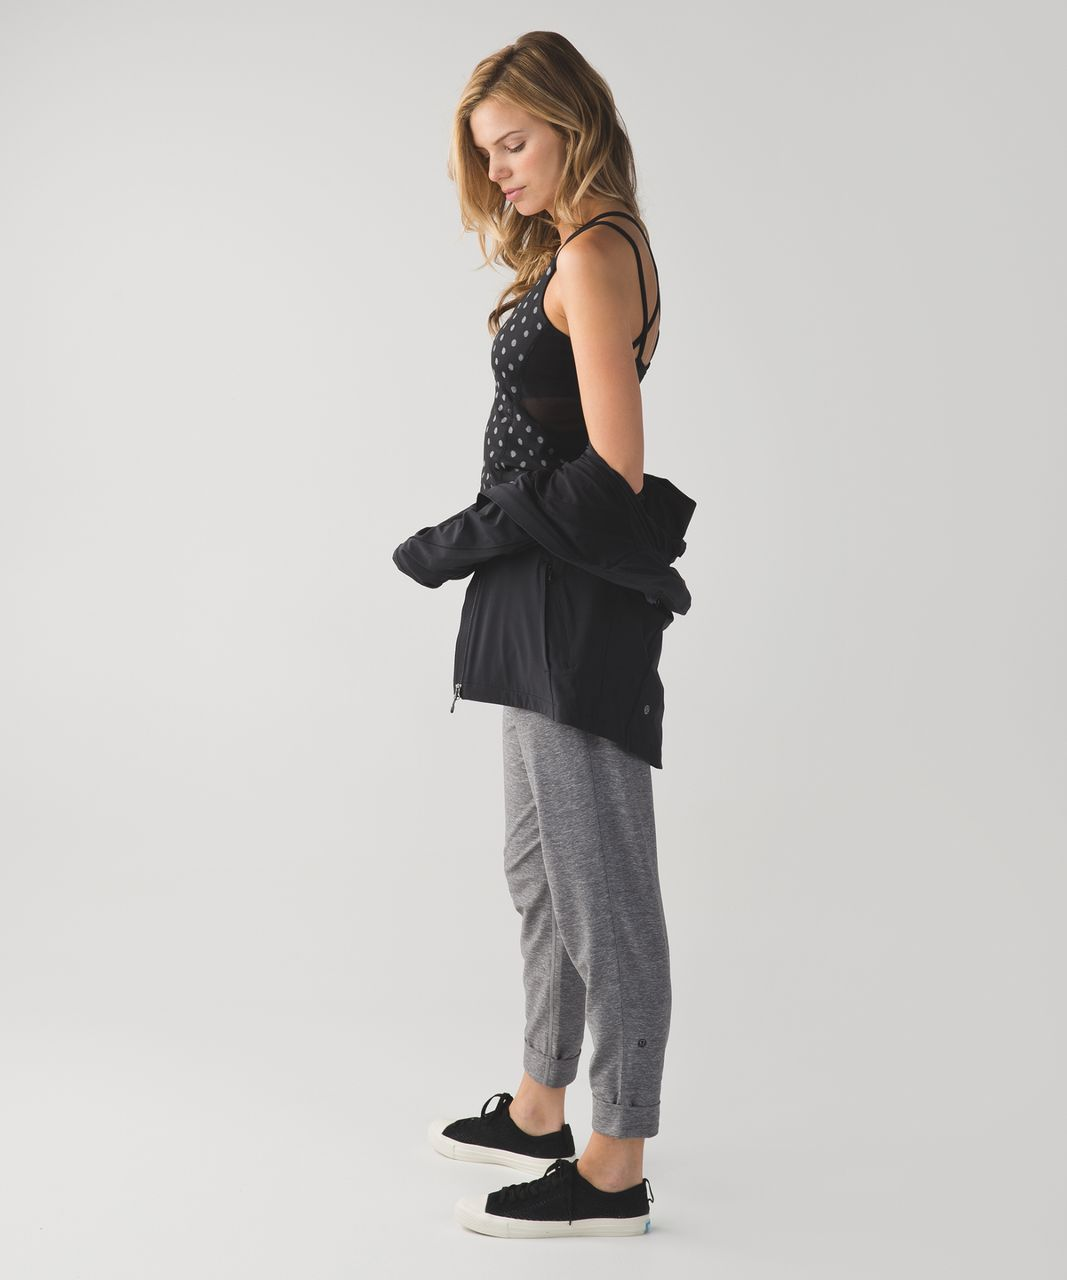 Lululemon Exquisite Tank - Ghost Dot Black Slate / Black